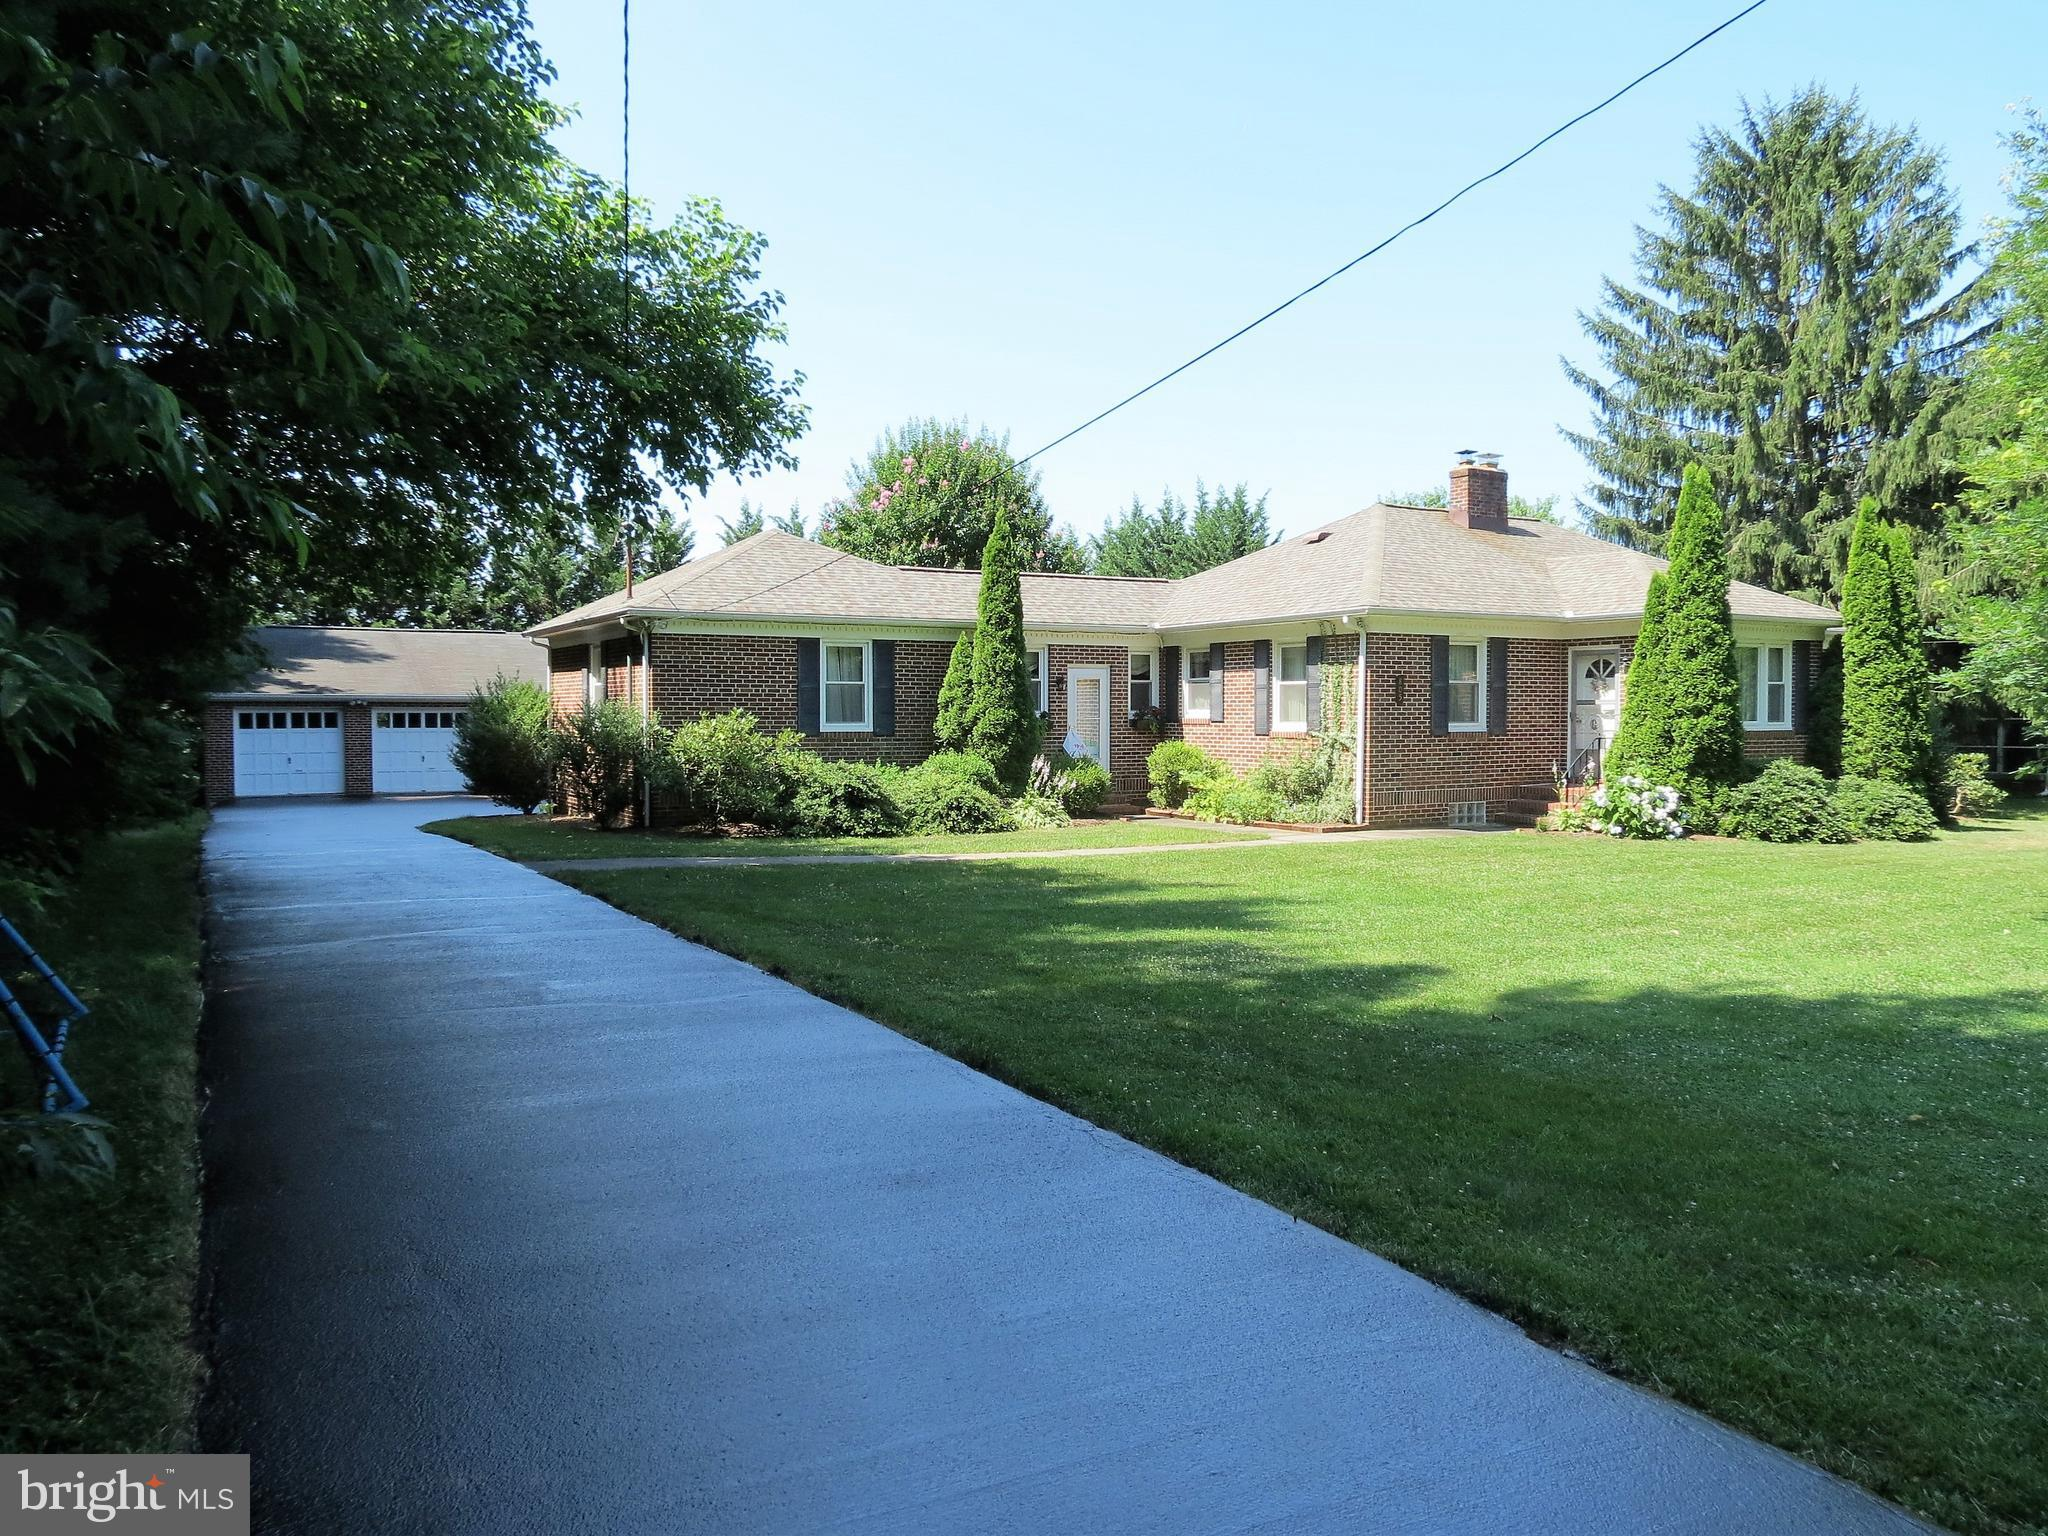 805 OLD LIBERTY ROAD, SYKESVILLE, MD 21784